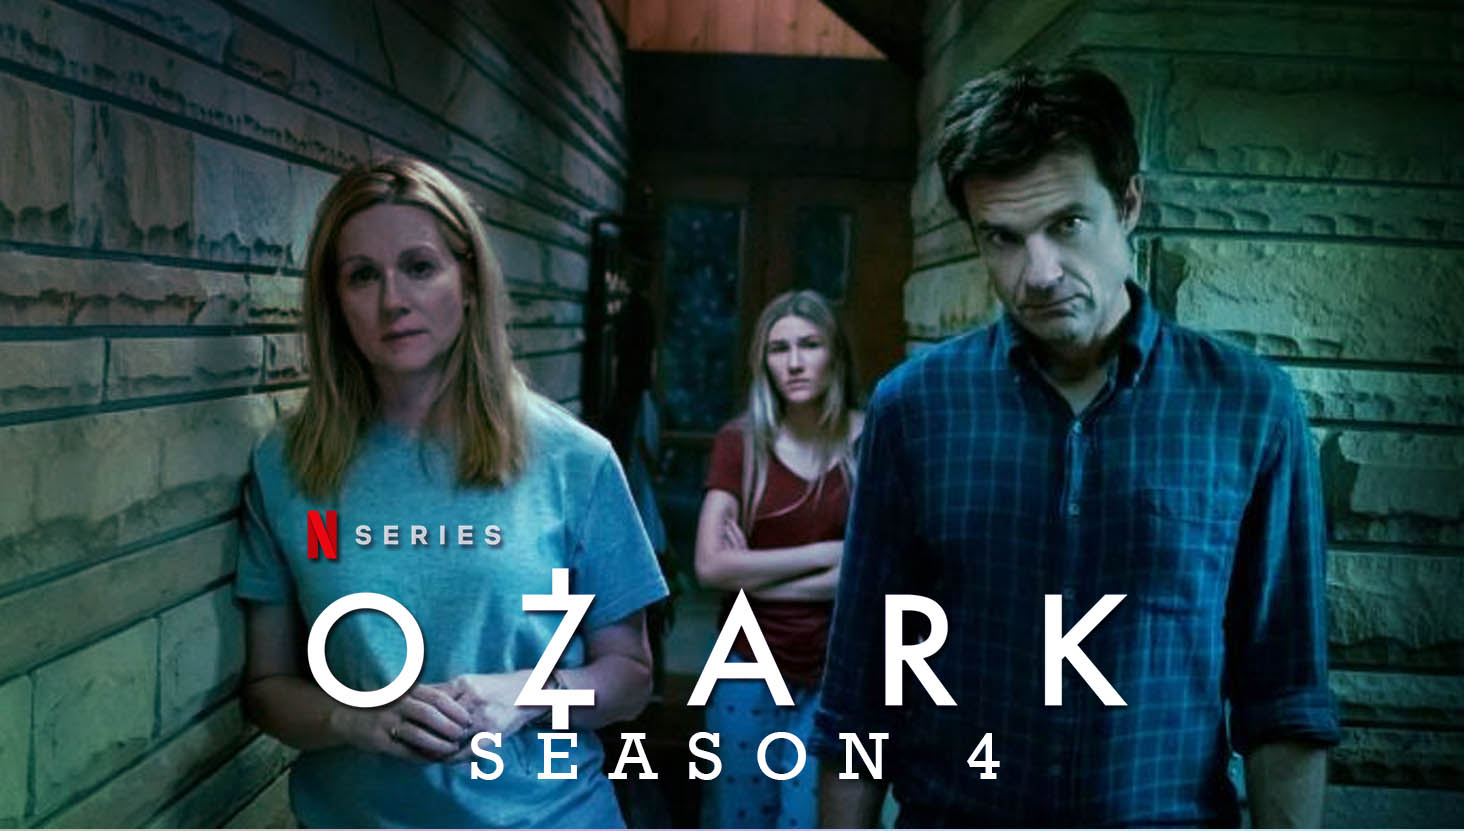 Fourth and final season of Ozark gets go-ahead for Netflix